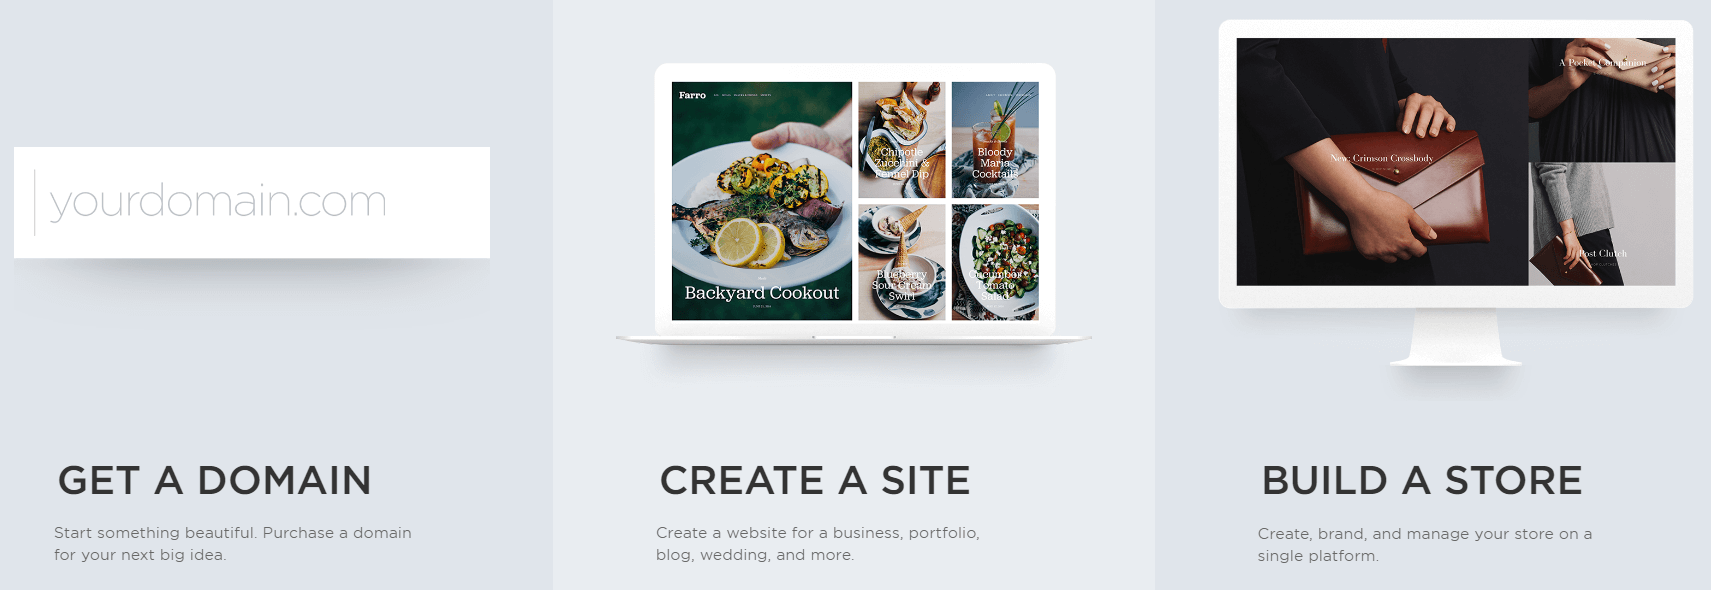 A screenshot from Squarespace's Getting Started process.